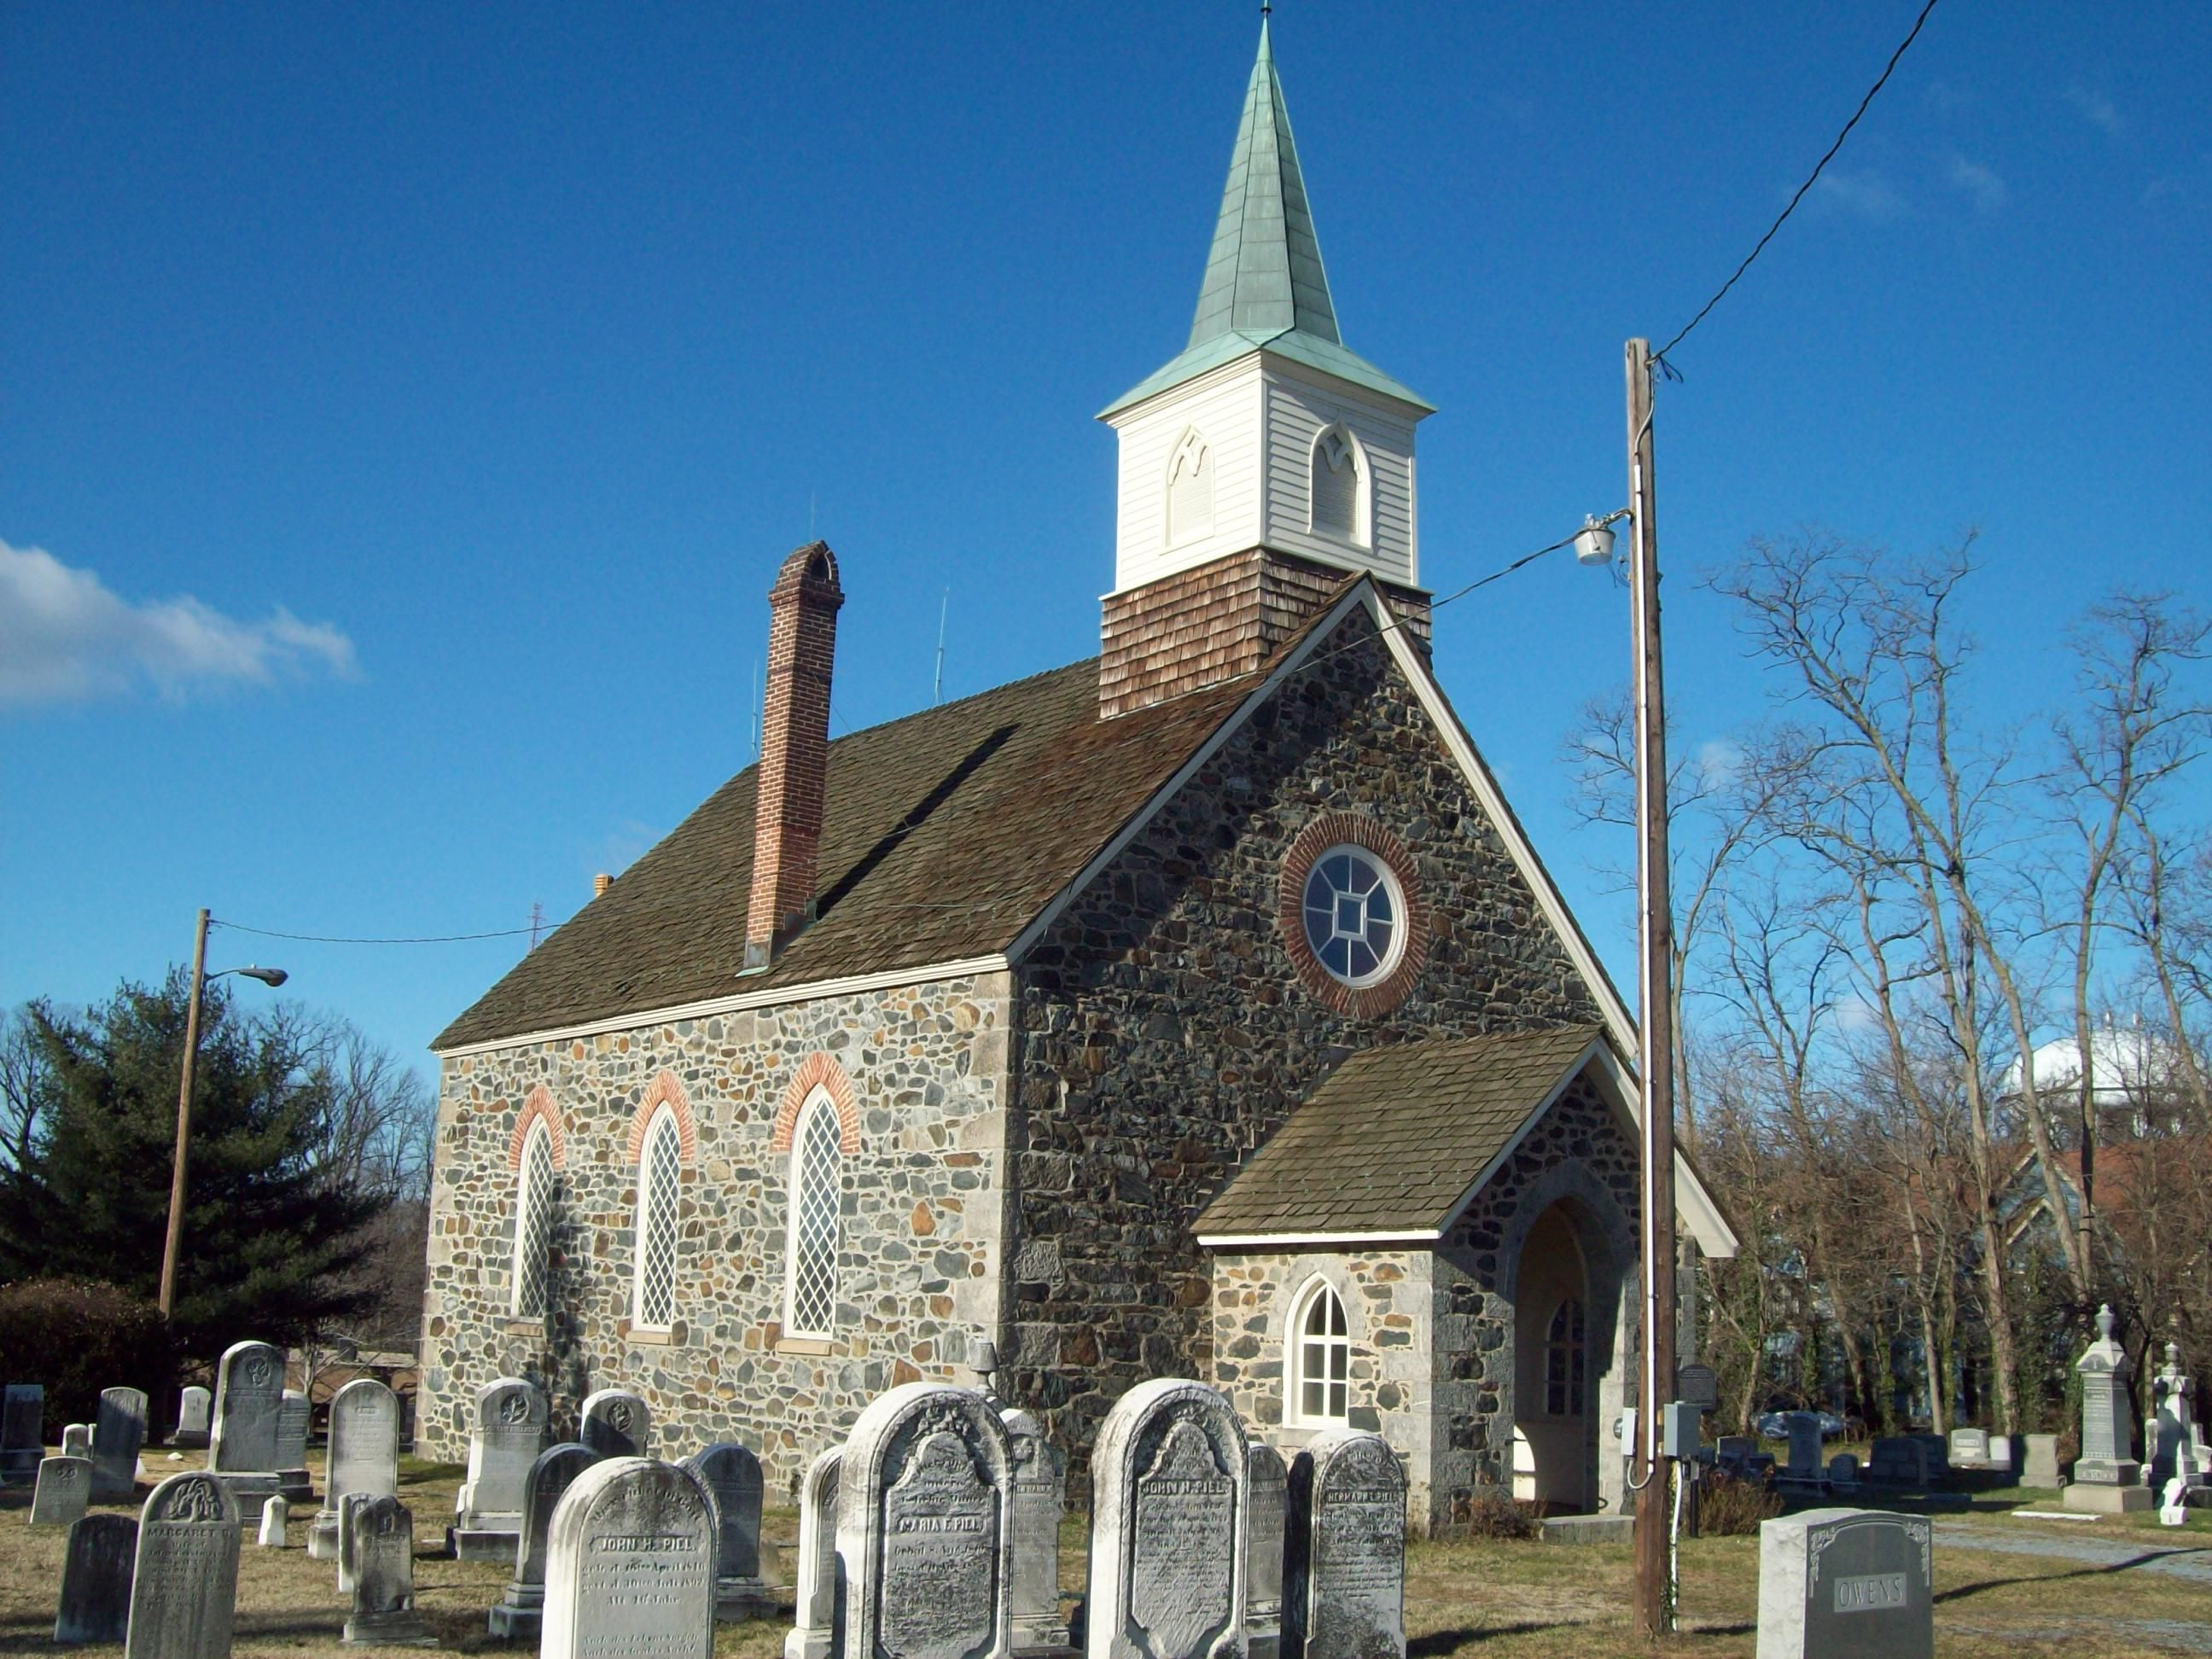 Old_Salem_Church_and_Cemetery_Dec_09.JPG (2592×1944)